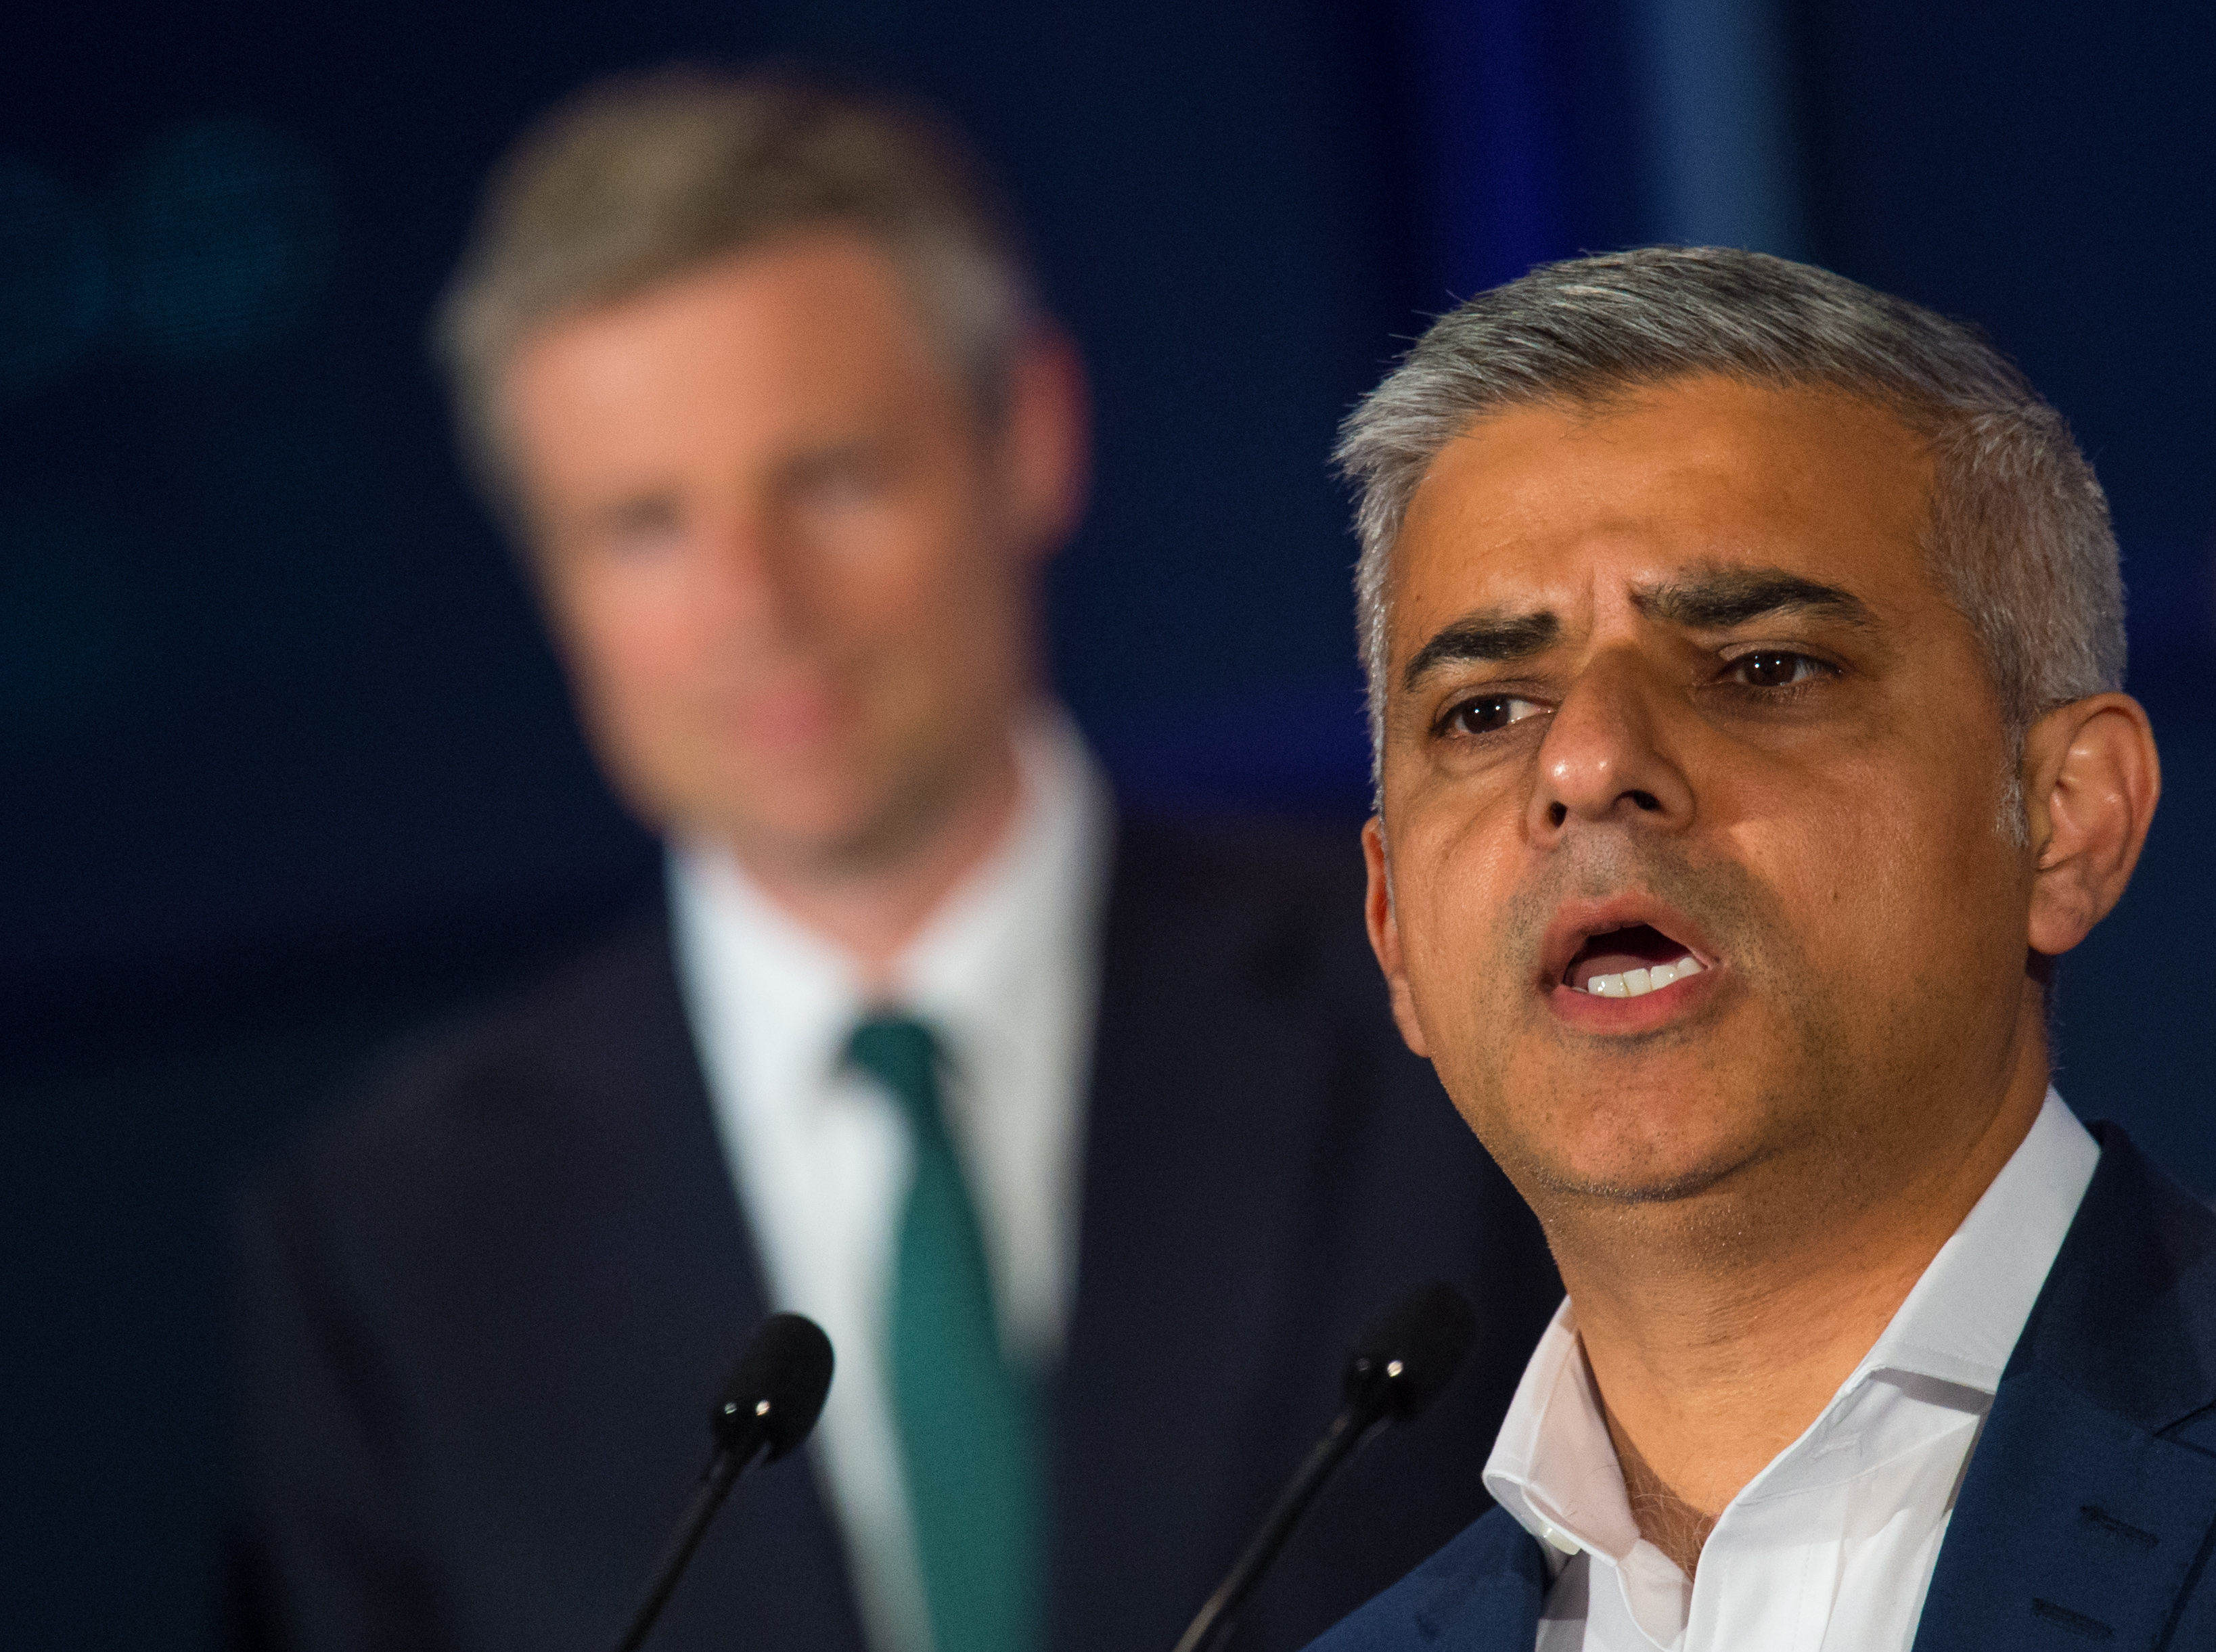 There Has Been A Brilliant Response To Racist Hijacking Of #LondonHasFallen sadiq2